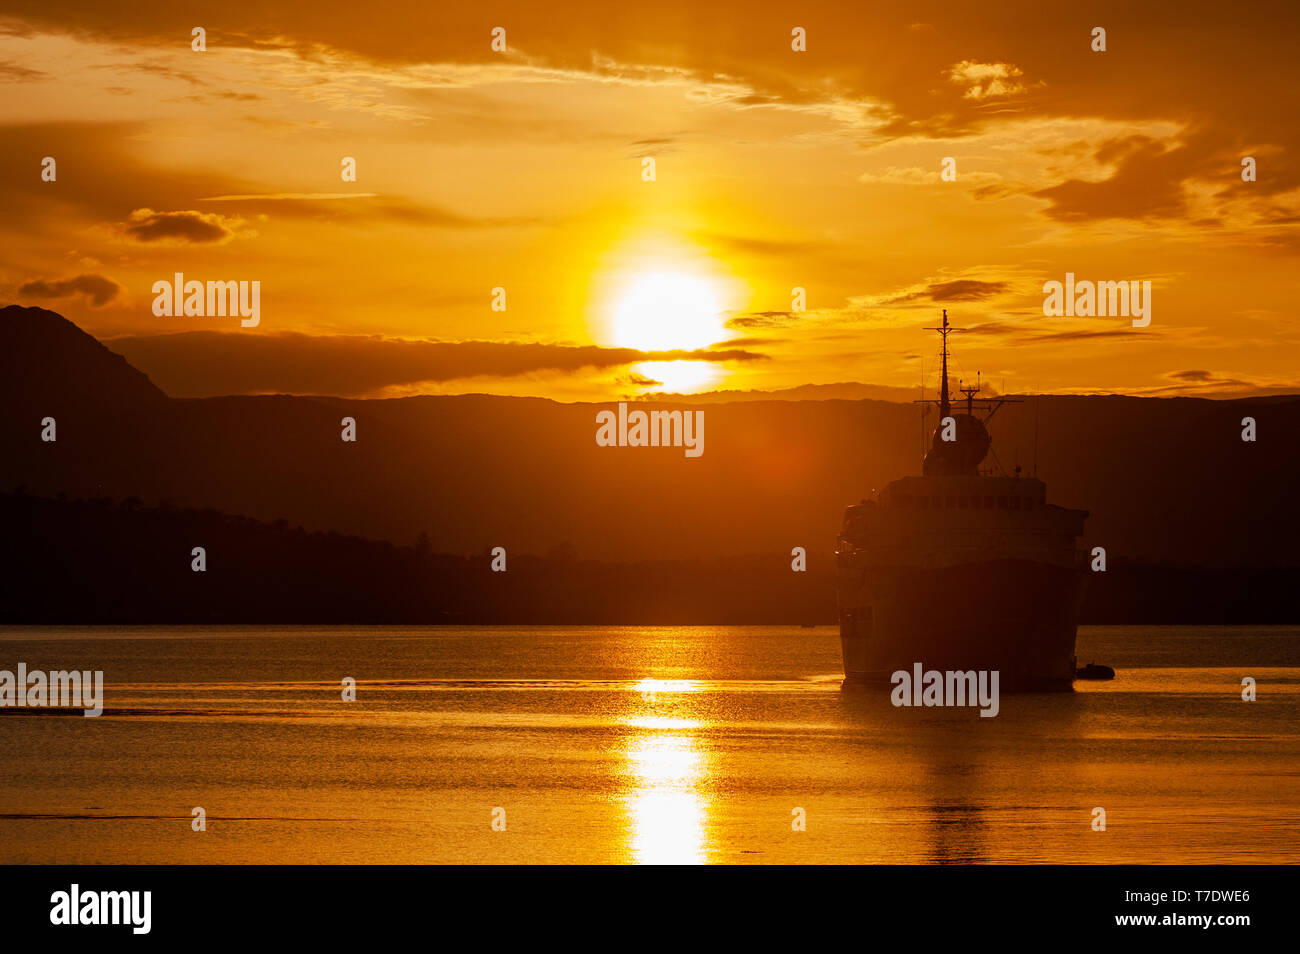 bantry-west-cork-ireland-6th-may-2019-the-sun-sets-behind-cruise-ship-serenissima-as-she-lies-at-anchor-in-bantry-bay-having-arrived-early-this-morning-she-sails-later-on-this-evening-credit-andy-gibsonalamy-live-news-T7DWE6.jpg